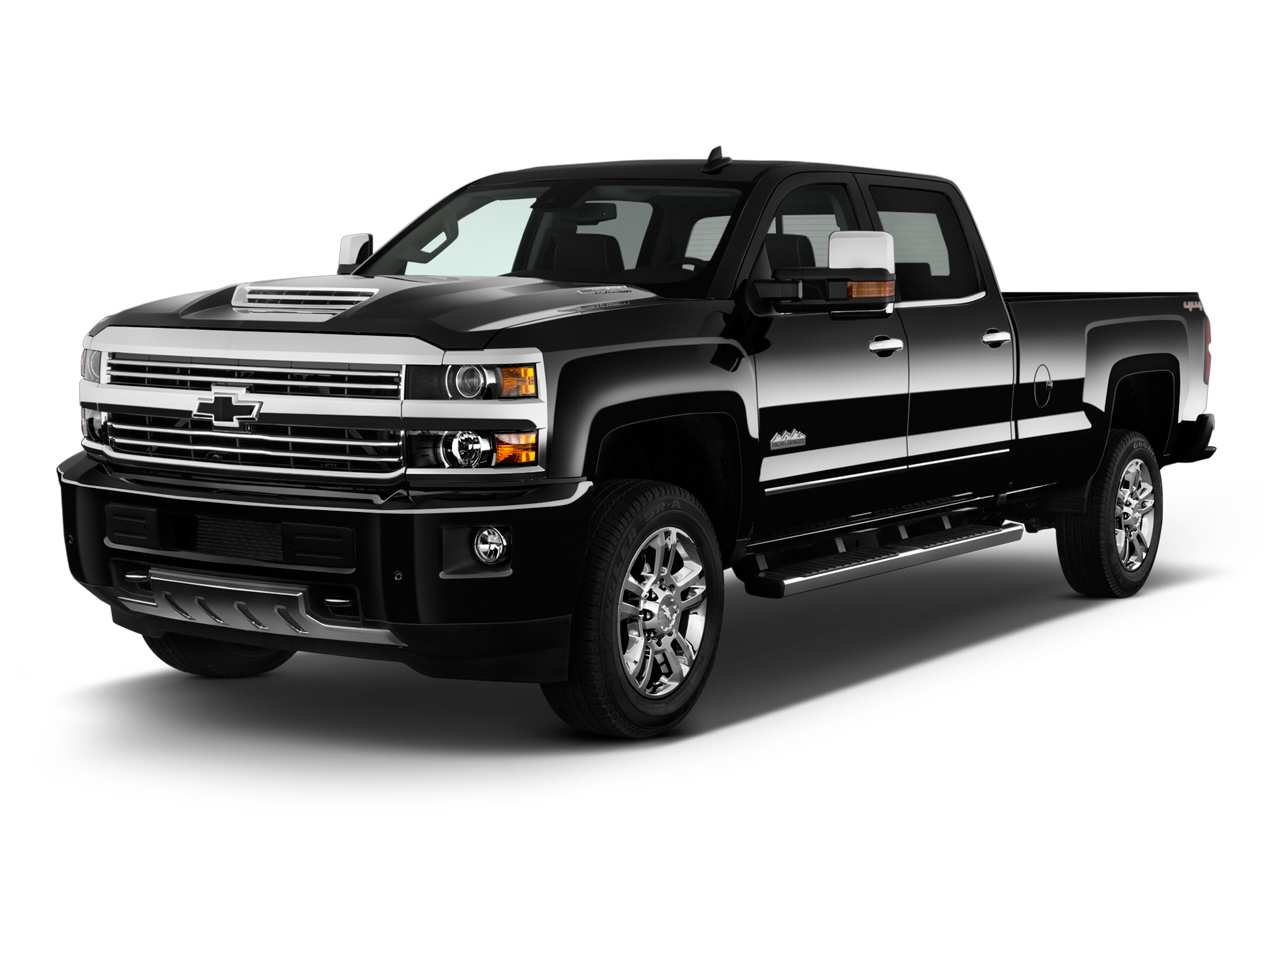 49 The Best 2020 Chevrolet Silverado Hd Teased Redesign And Concept